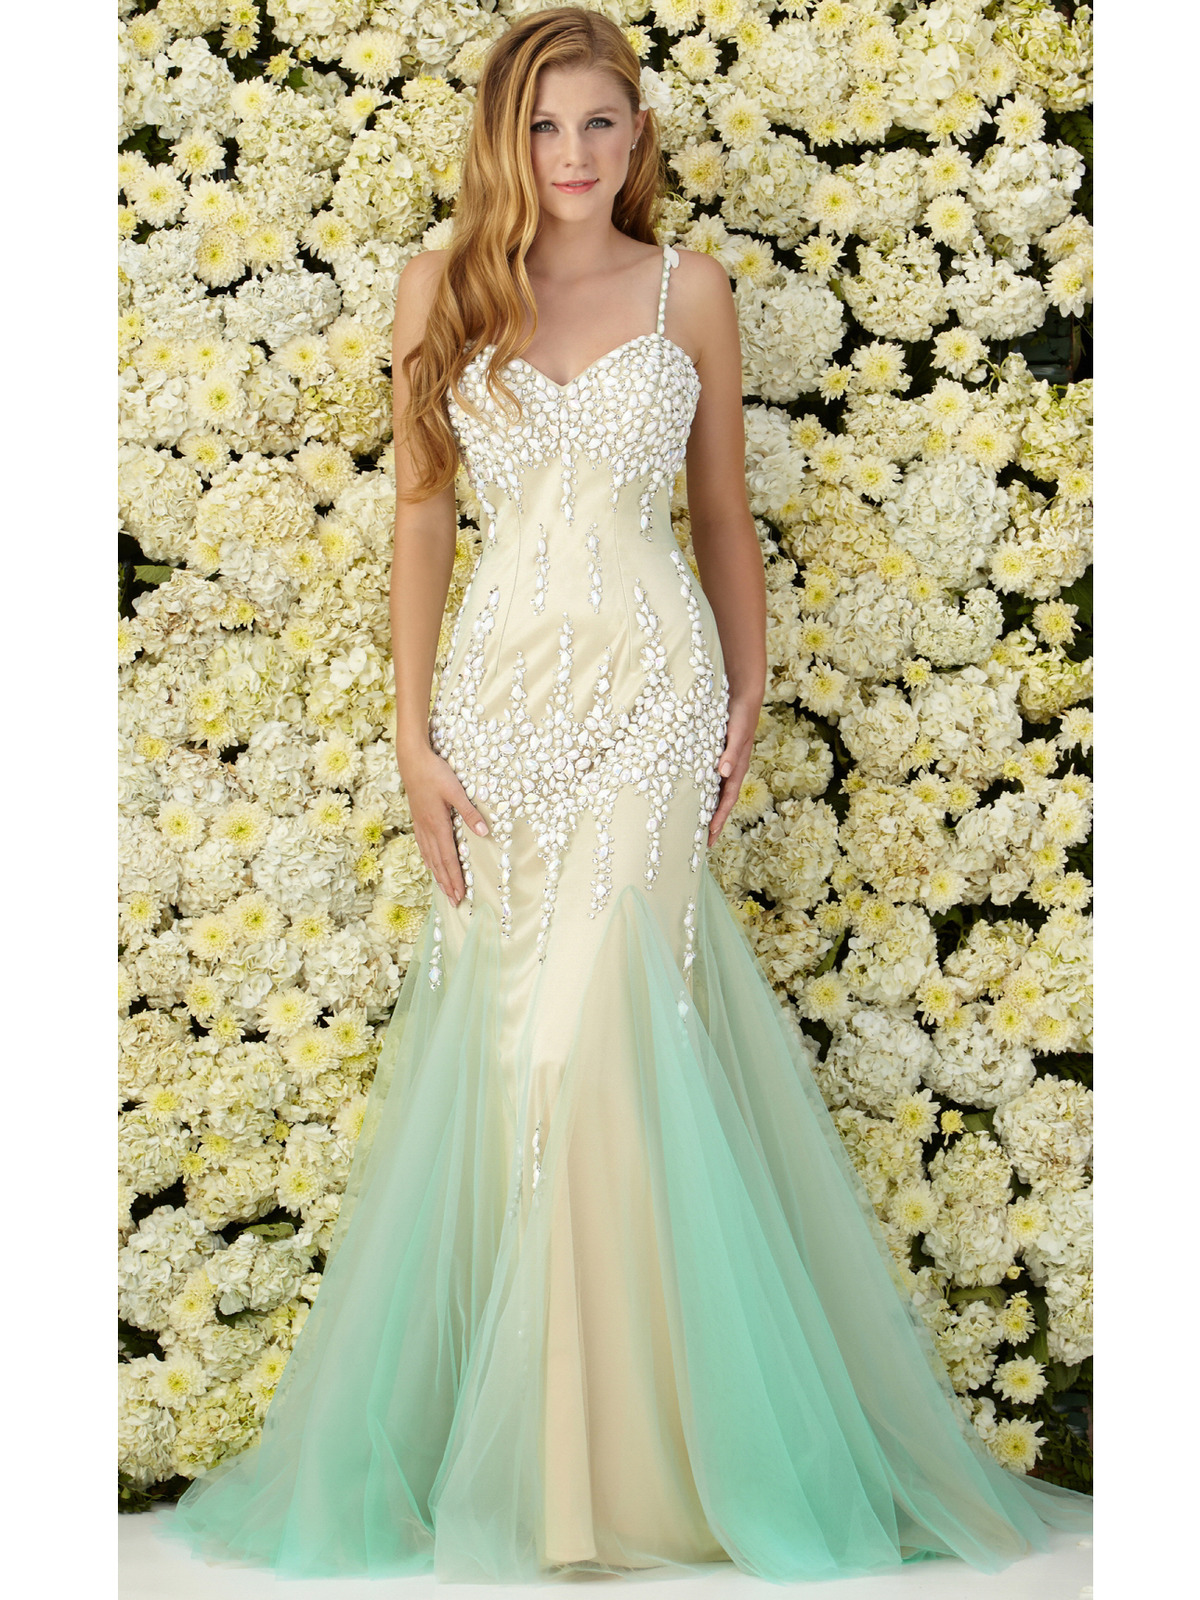 Tulle Prom Dress | Sung Boutique L.A.